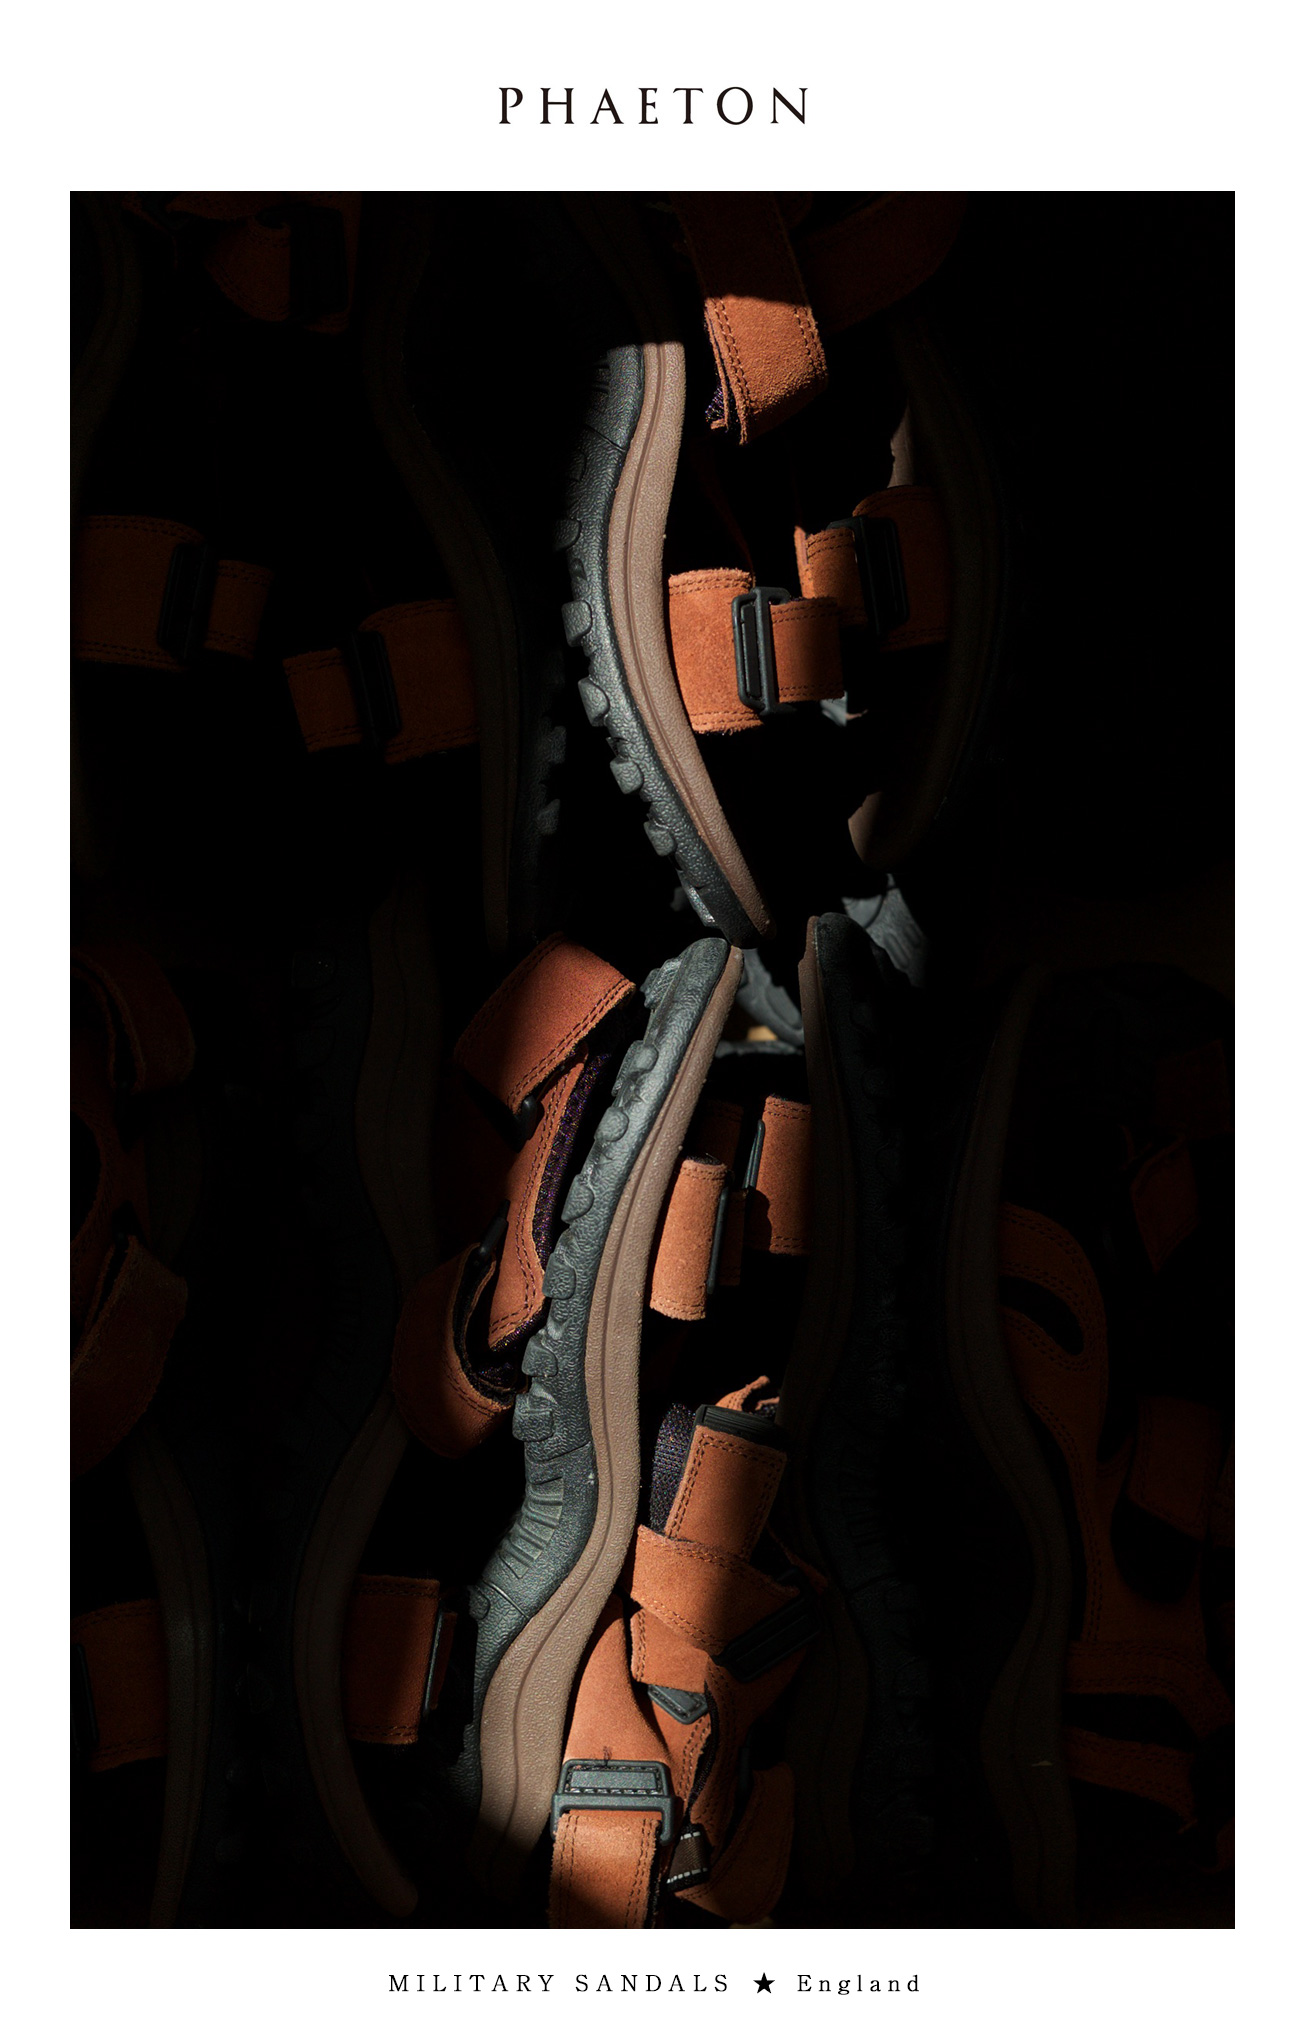 MILITARY_SANDALS_England11